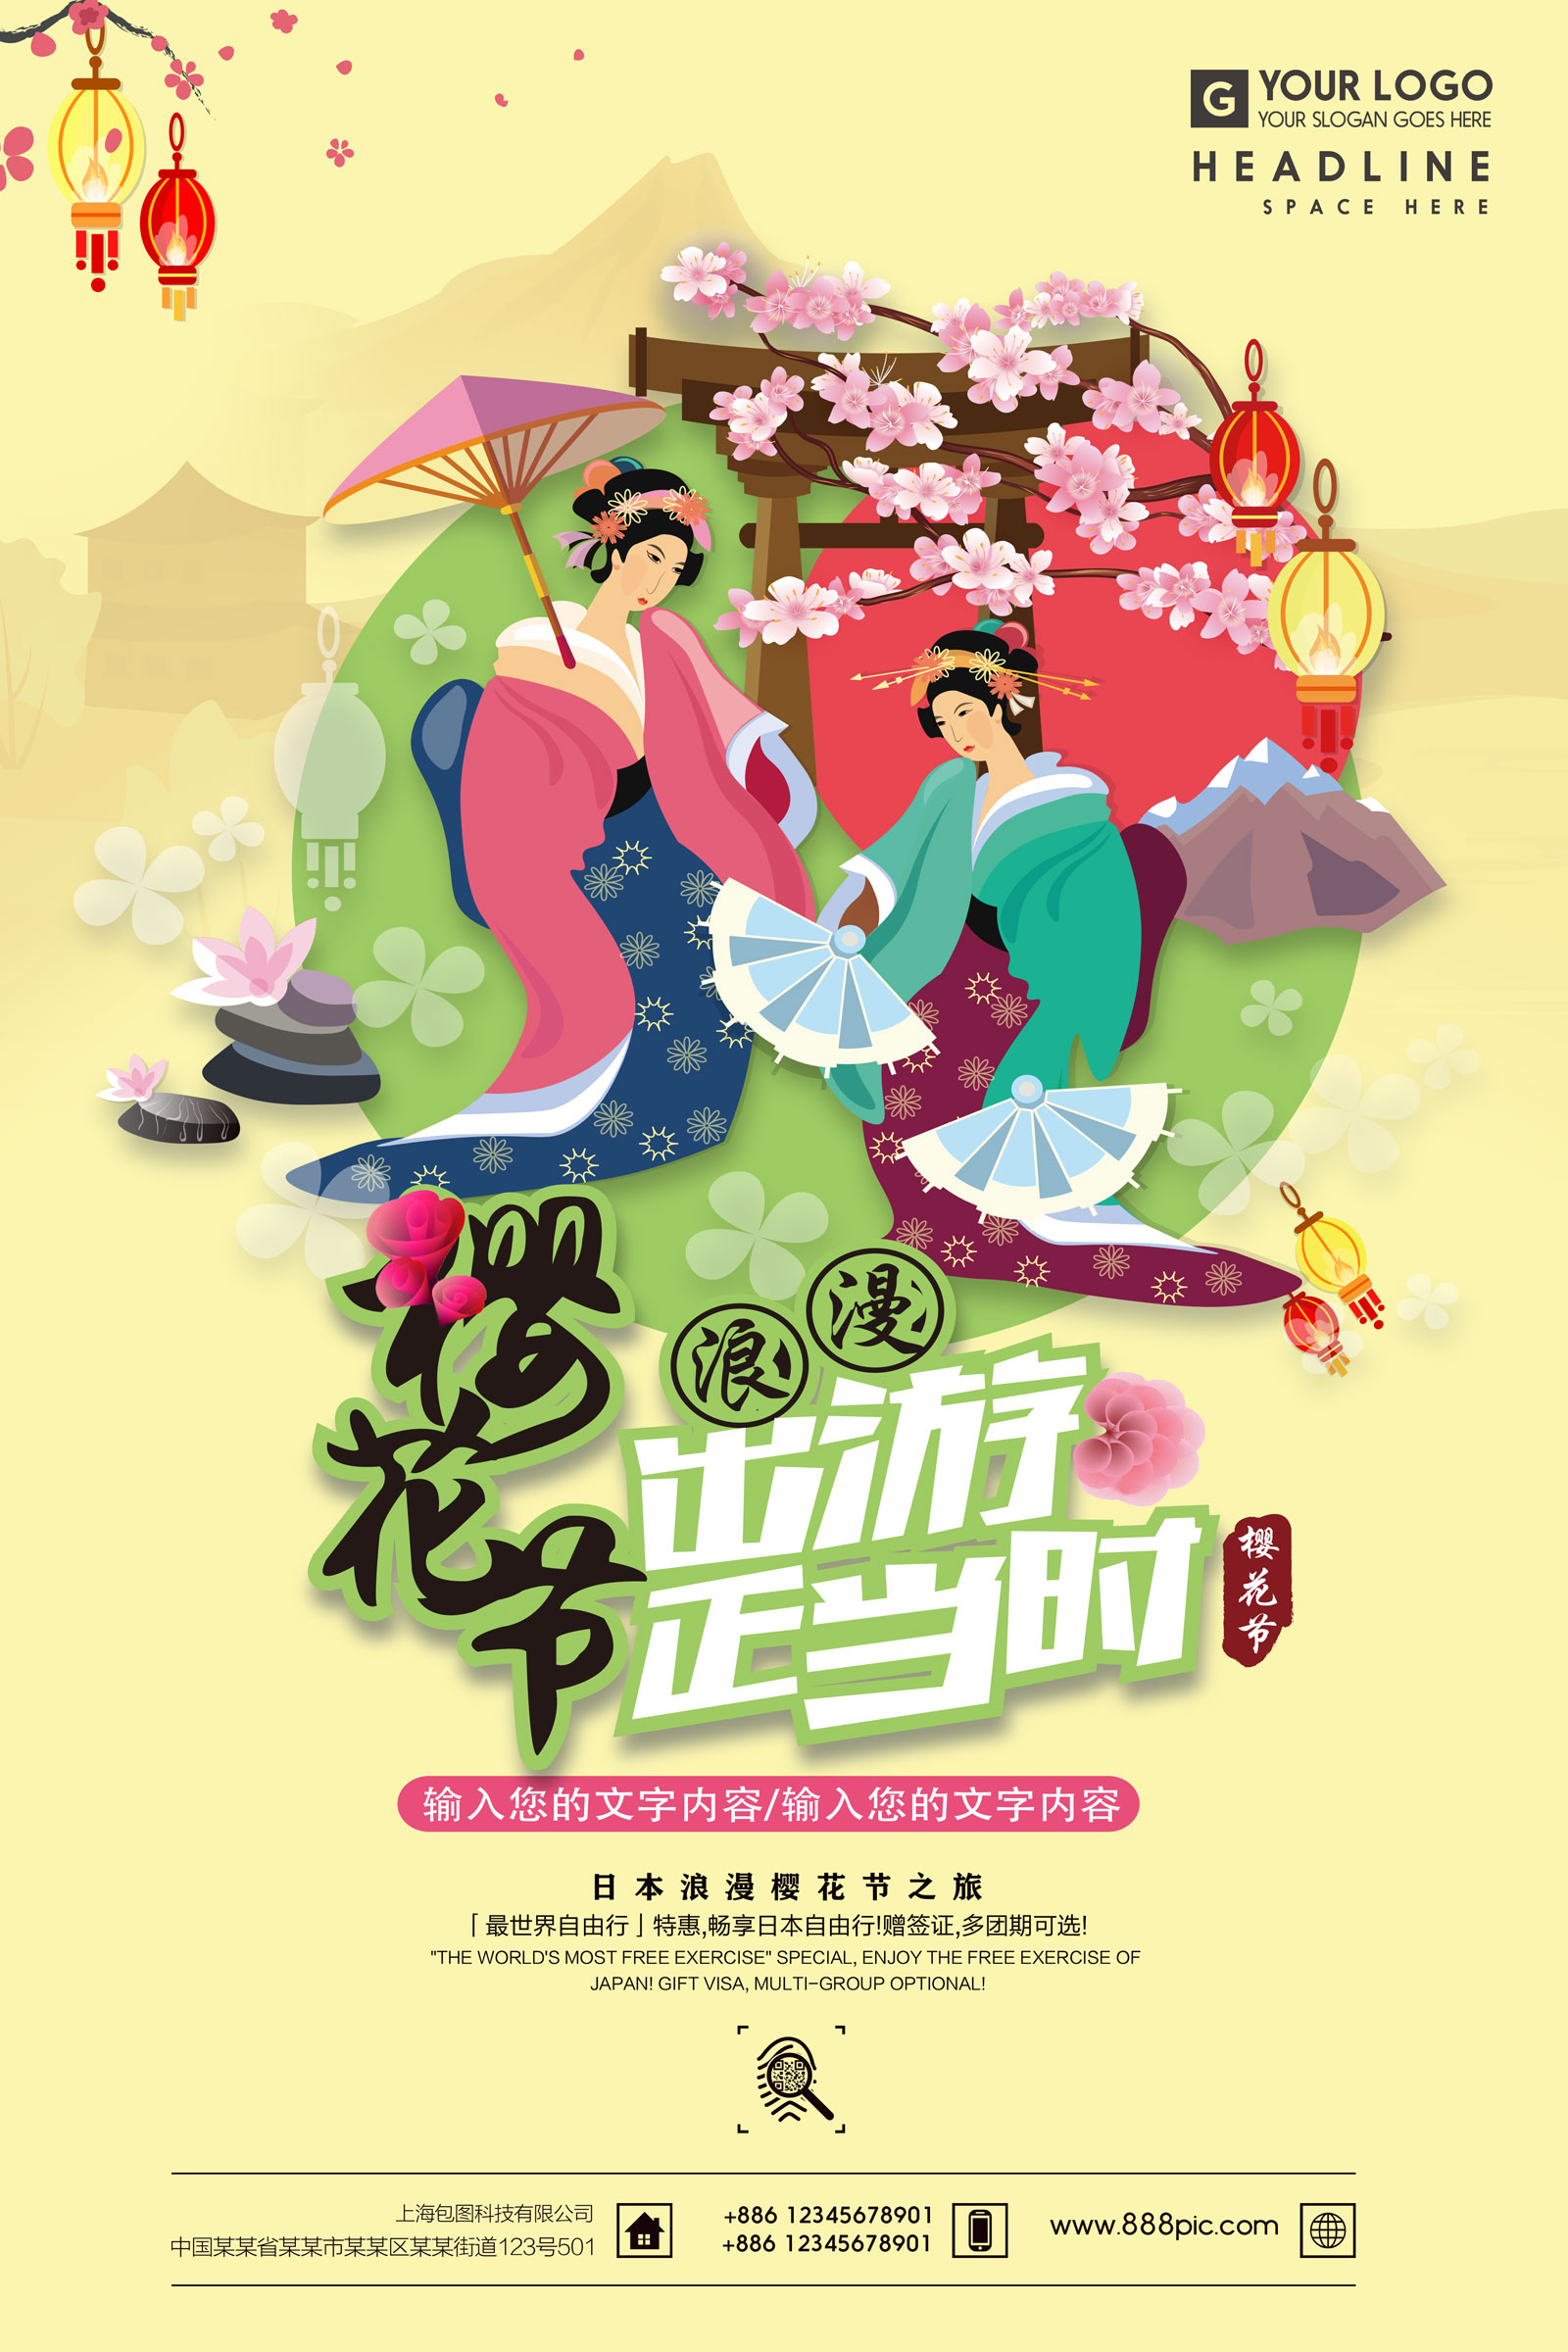 chinesefontdesign.com 2017 03 23 19 12 43 Japan Romantic Cherry Blossom Festival Travel Poster PSD material download    China PSD File Free Download Travel Poster PSD